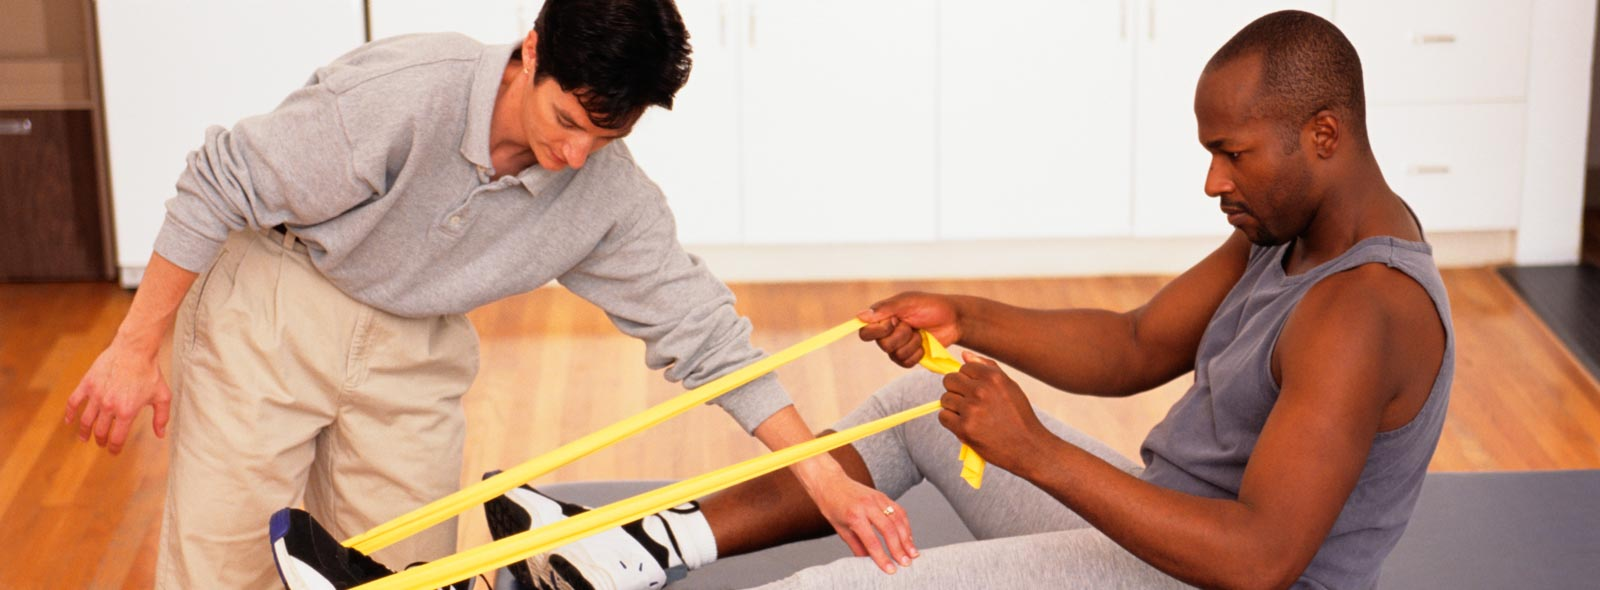 1to1 physiotherapist assisting a patient with excercises